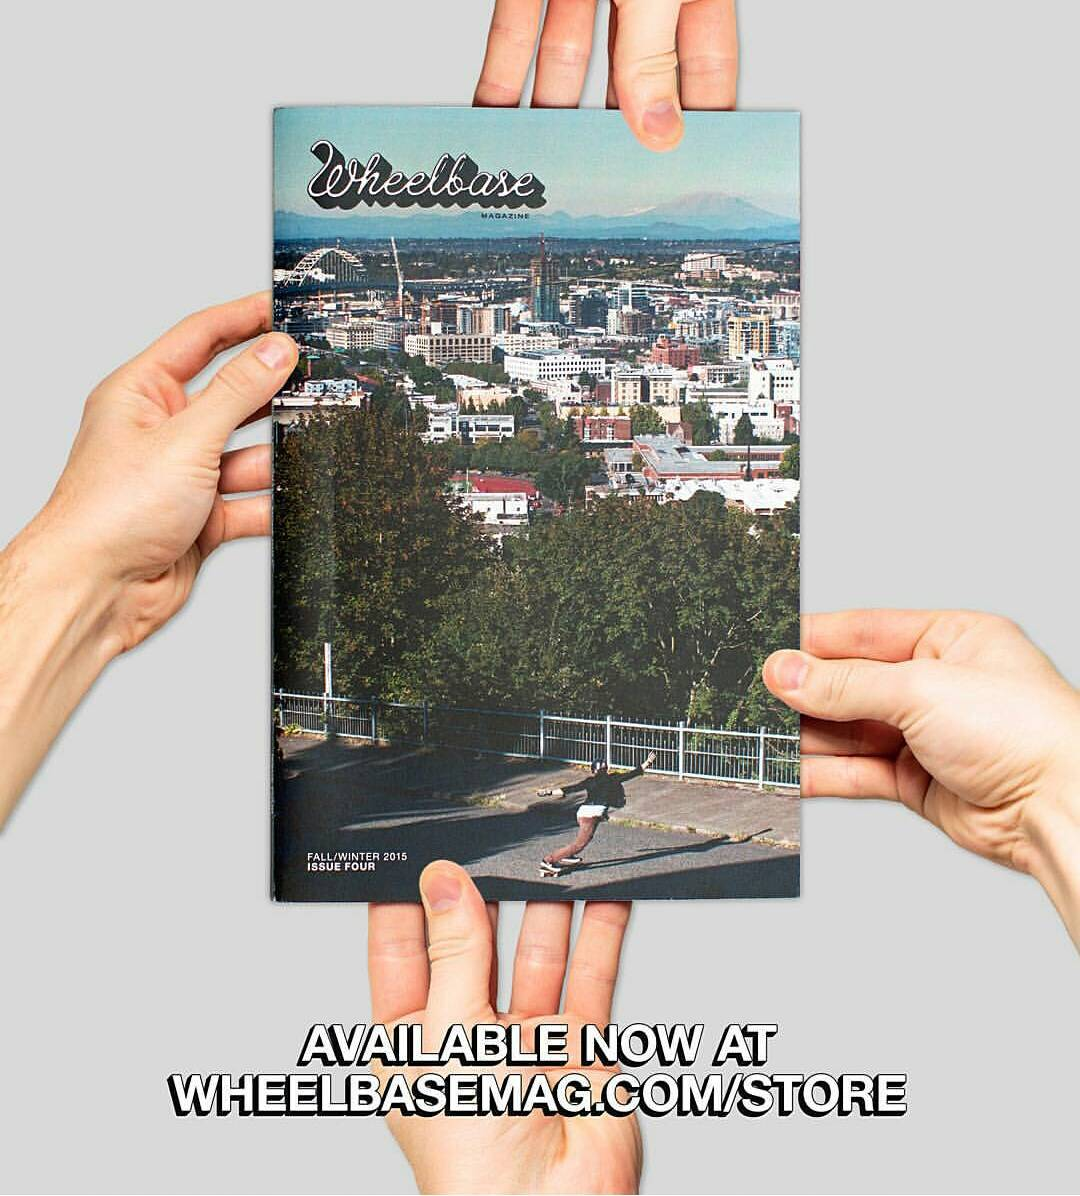 Issue 4 is out and about!  Available now at Wheelbase.com!  Grab a copy and get inspired to get rad!  #WheelbaseMag4 @wheelbasemag